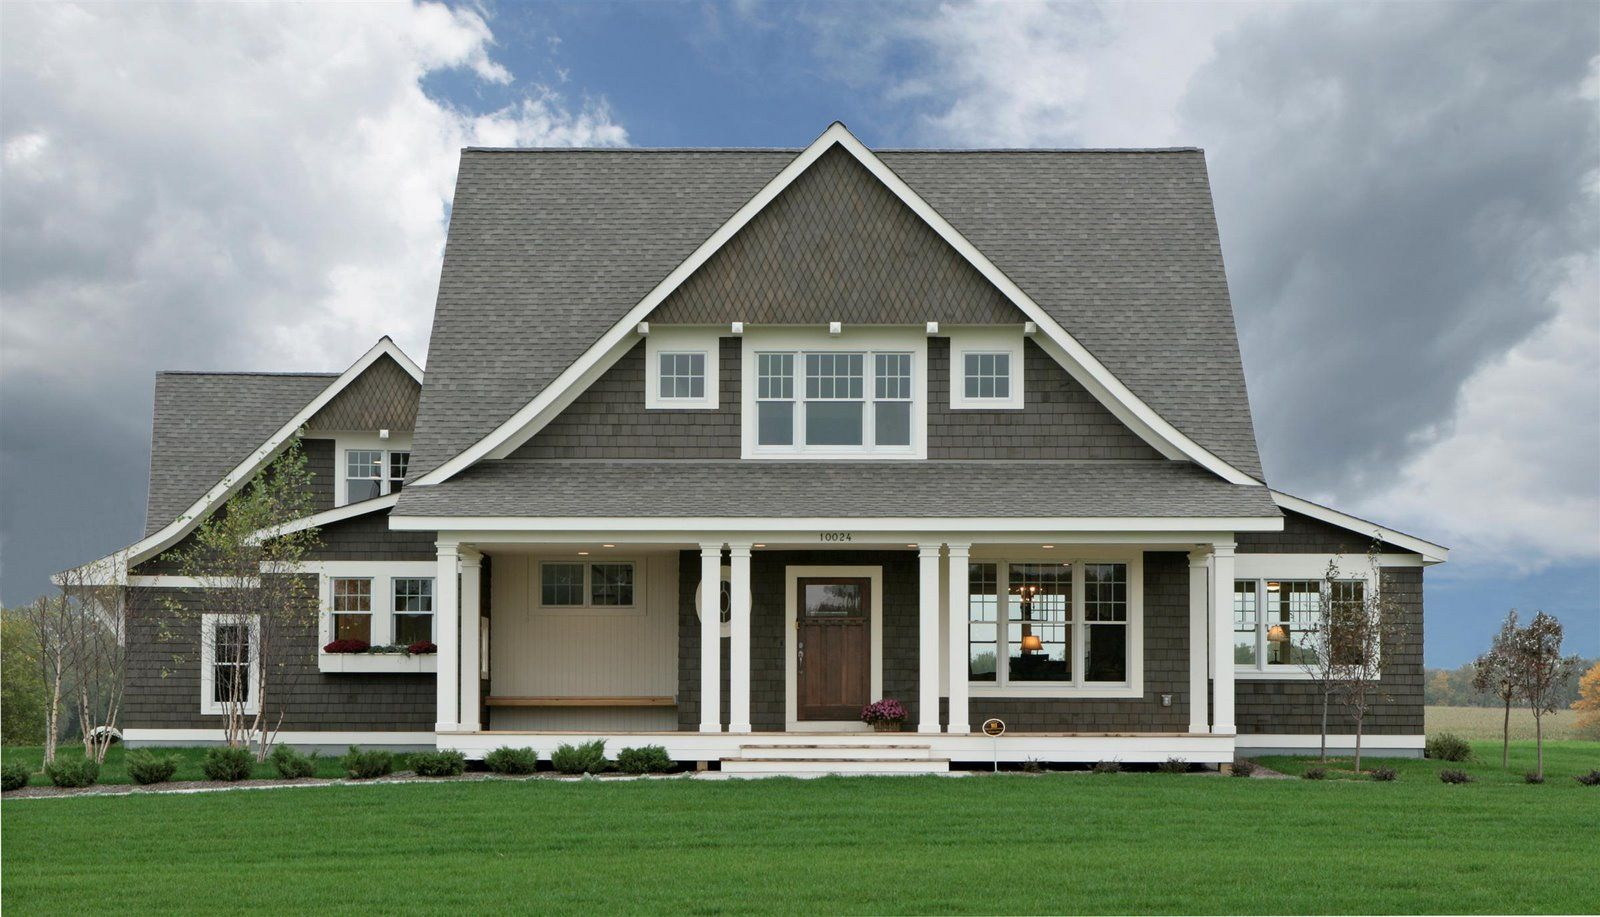 The Home Exterior Must Reflect The Personal Style Of The Owner Too Description From Inmyinterior Com I Searc Shingle House Plans House Exterior Shingle House